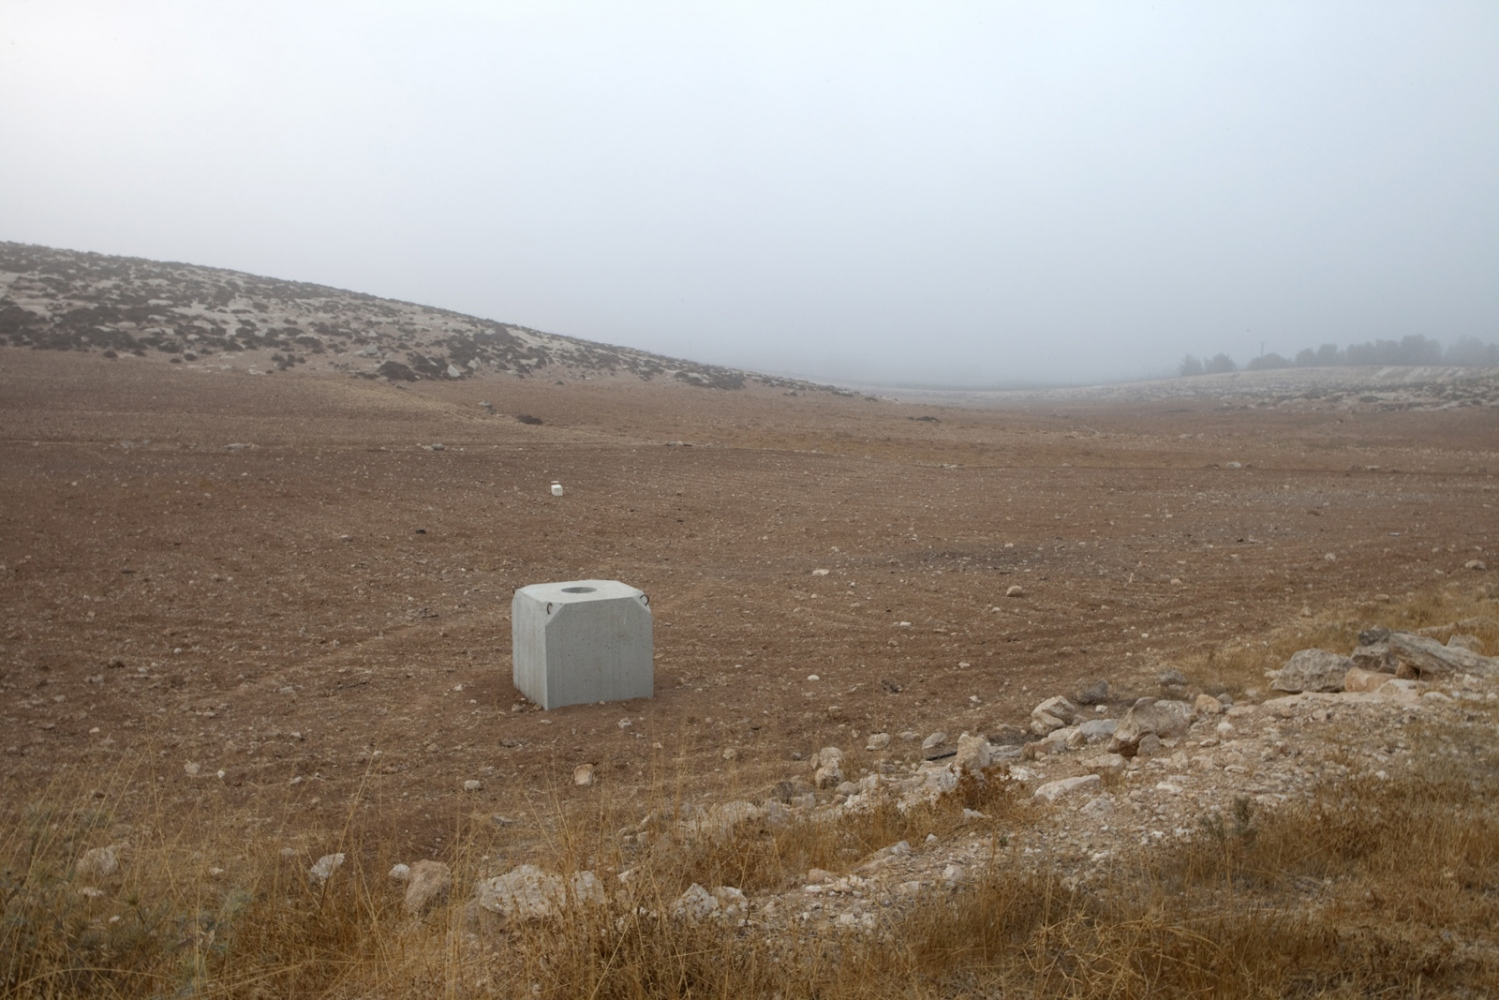 Looking south over a Palestinian field in the south Hebron Hills. The trees mark the Israeli side of the Green Line and barrier.